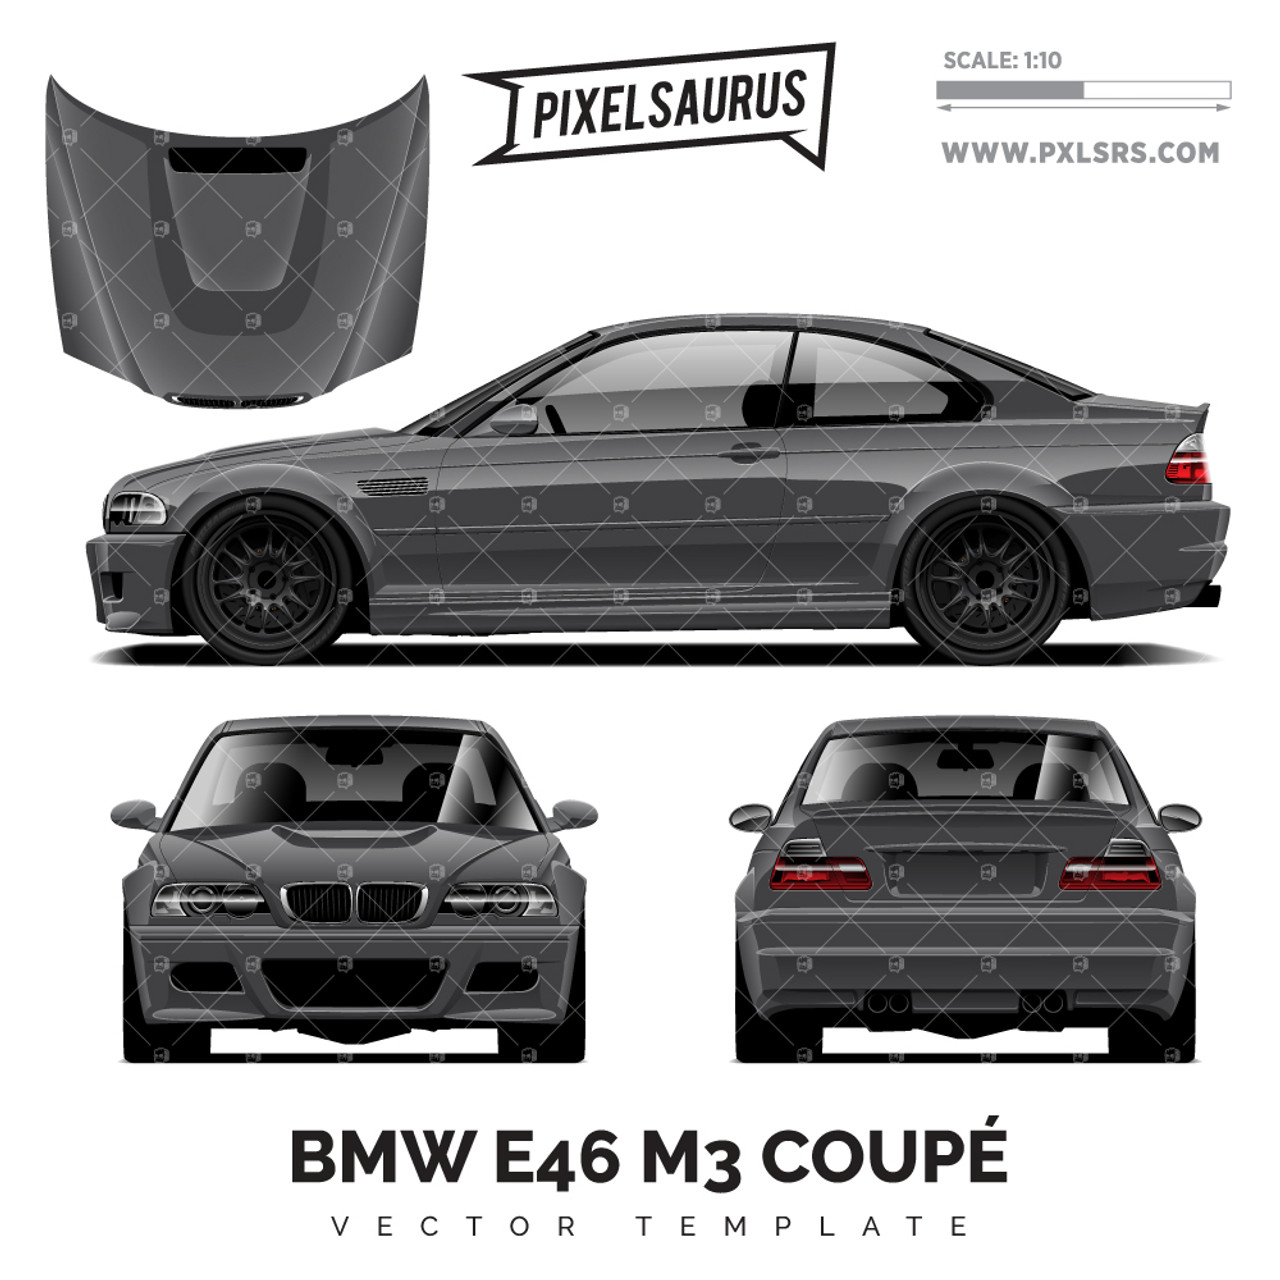 Bmw E46 M3 Coupe Vector Template